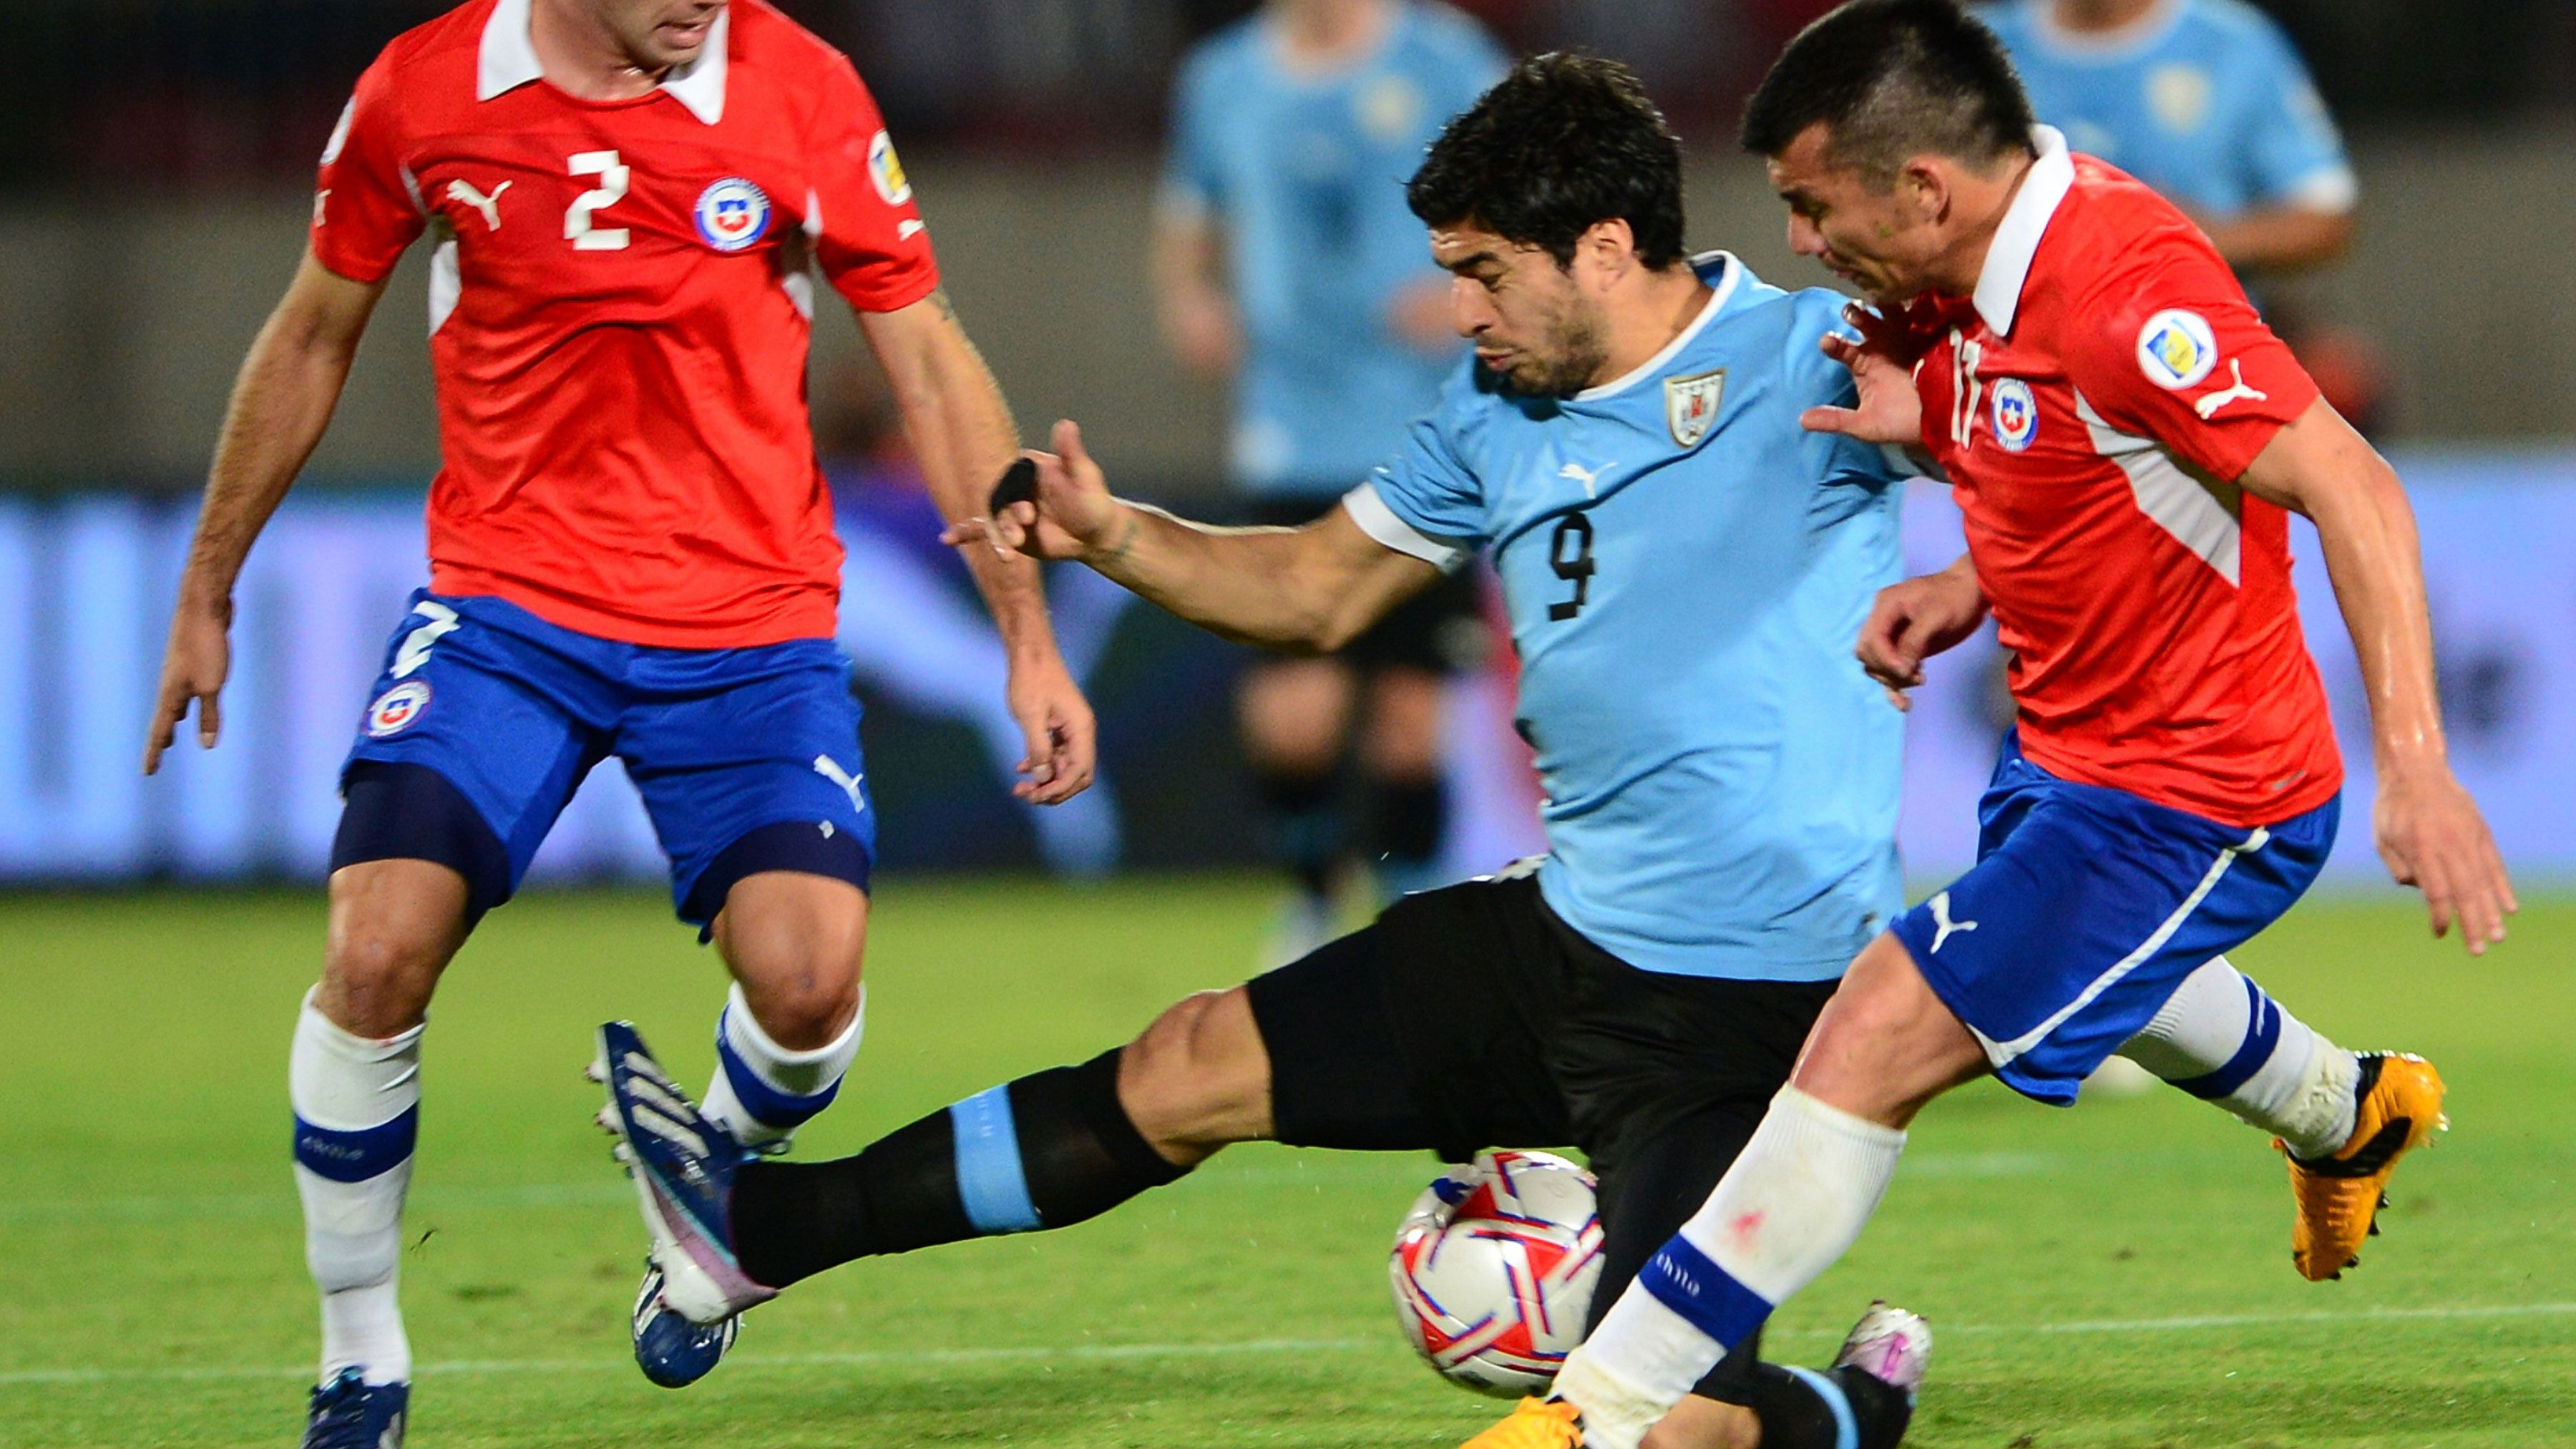 Suarez punched Chile defender Gonzalo Jara off the ball during a World Cup qualifier